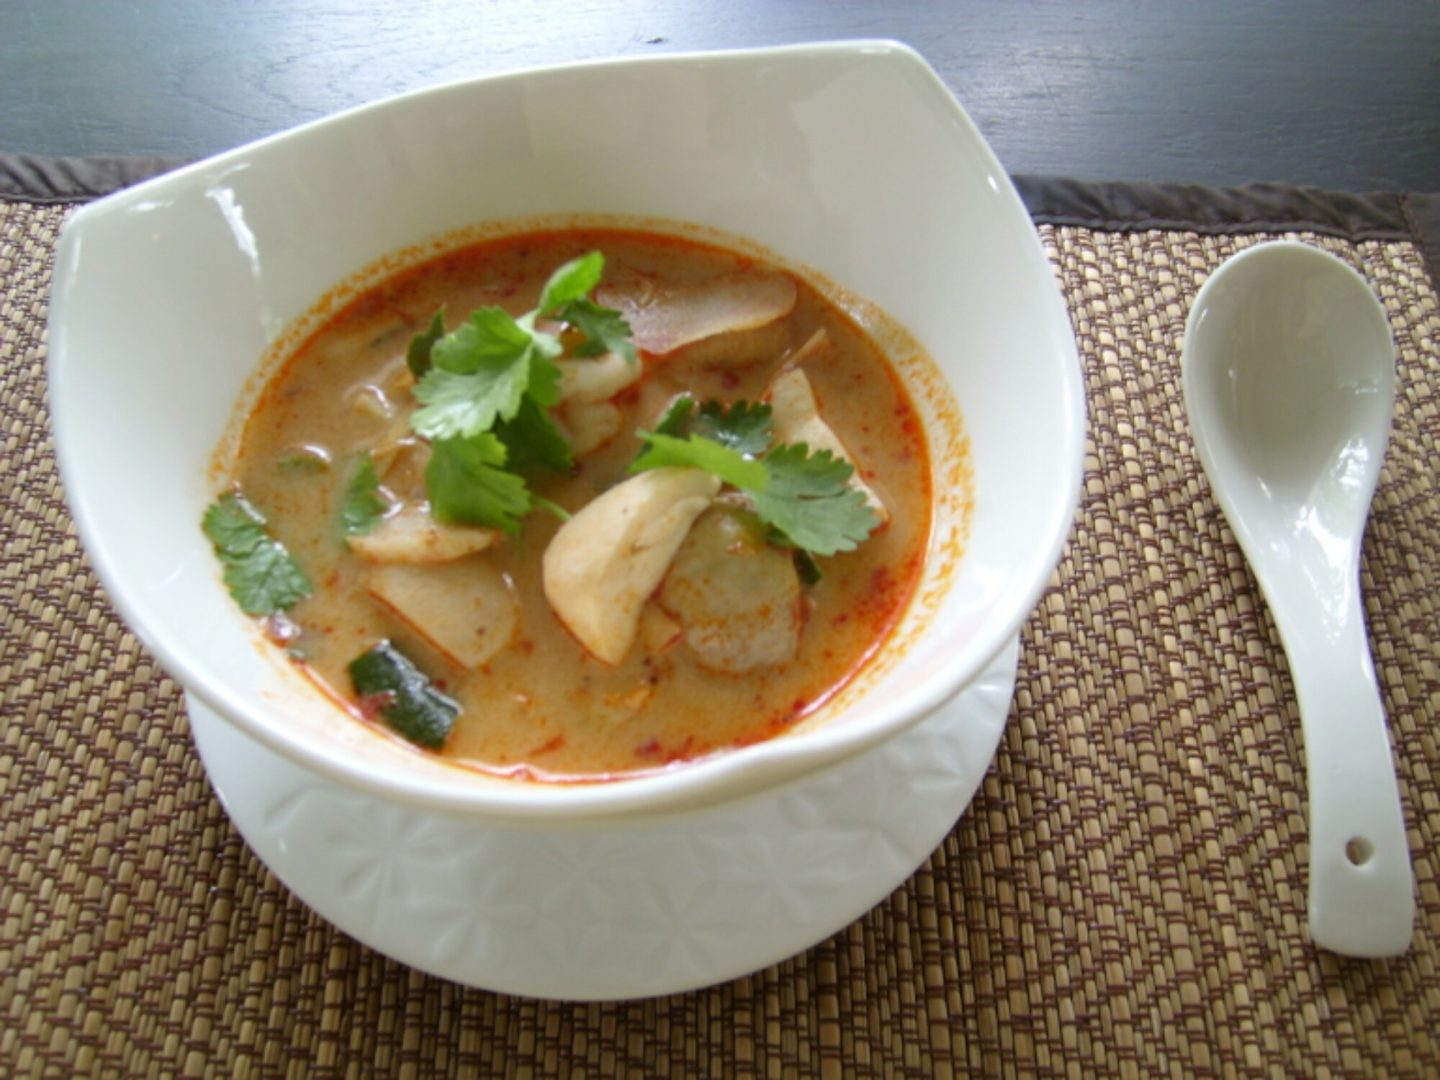 Thai Cooking Course & MBK